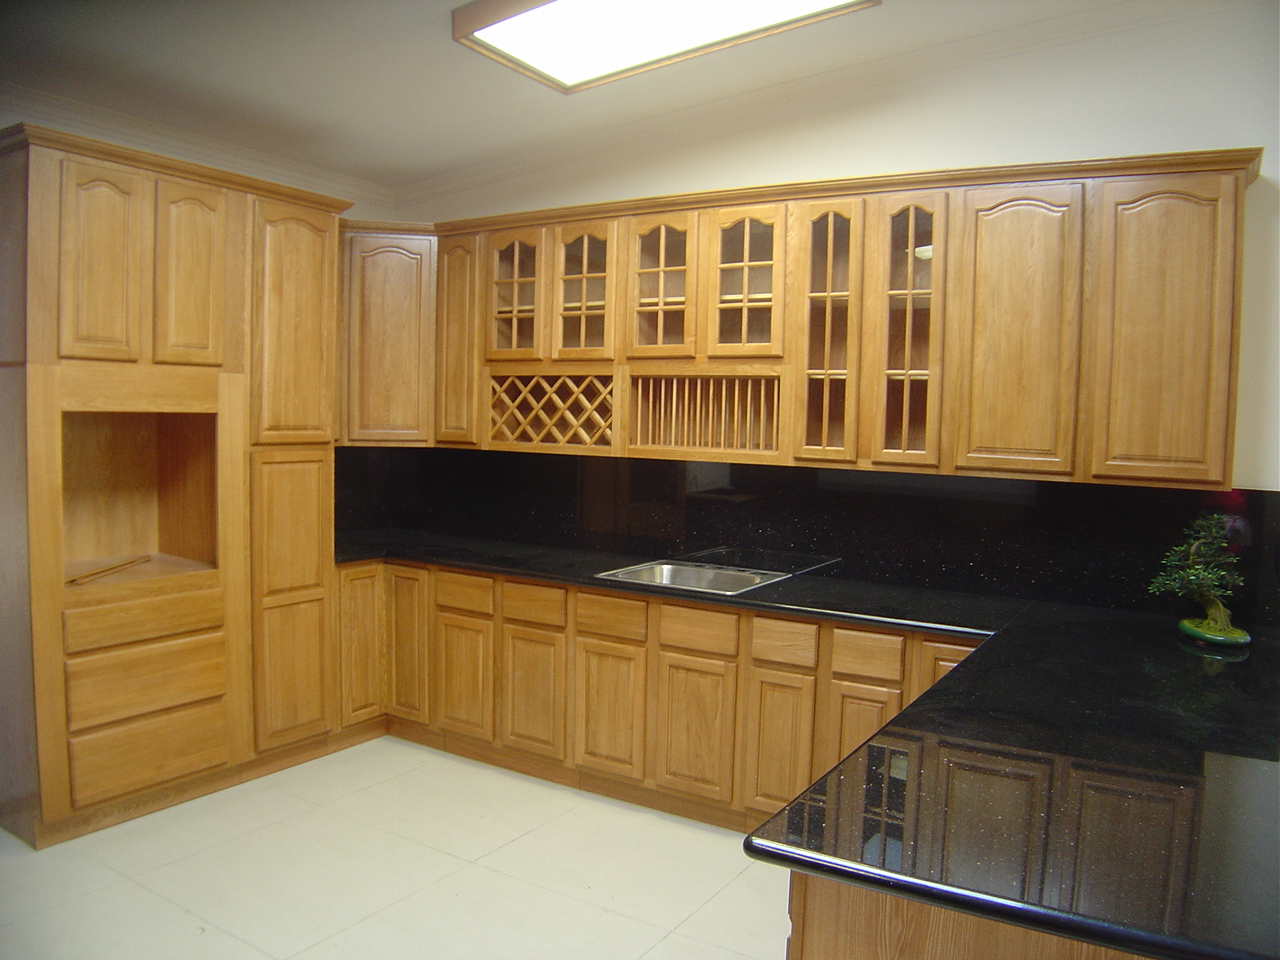 Oak kitchen cabinets for your interior kitchen minimalist for Kitchen units design ideas